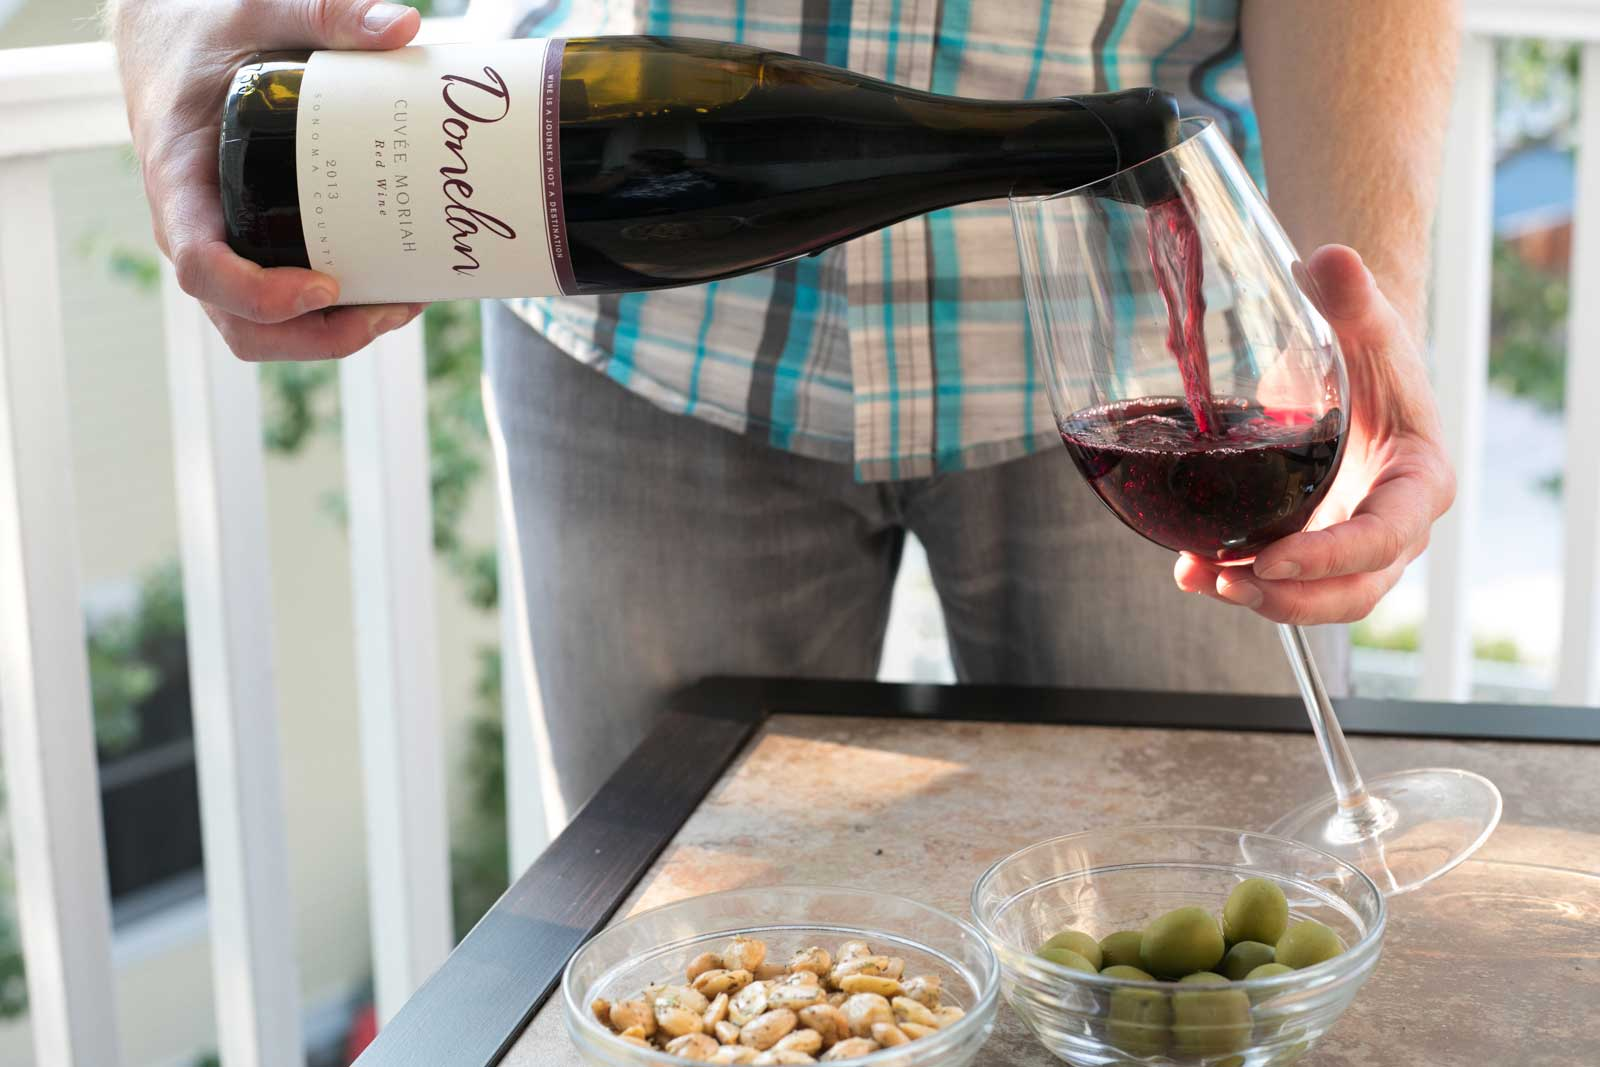 Pouring 2013 Donelan Wines Cuvée Moriah ©Kevin Day/Opening a Bottle